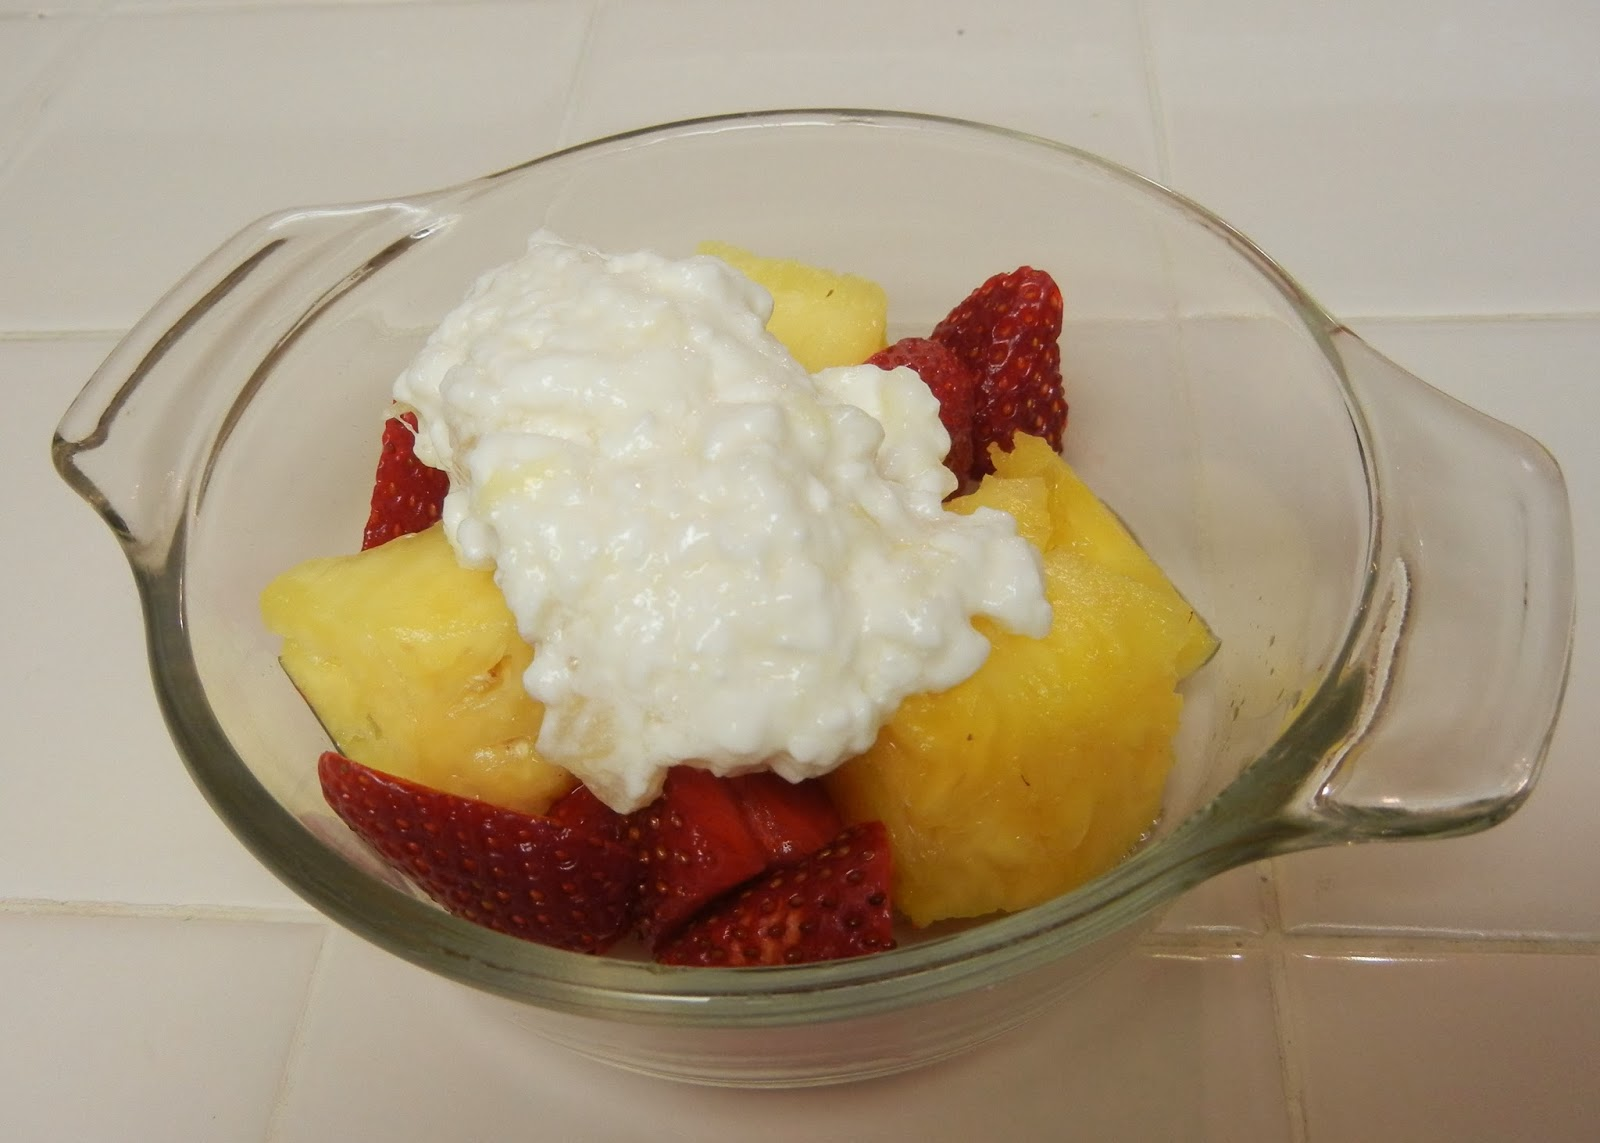 Fruit+and+Cottage+Cheese Weight Loss Recipes A day in my pouch